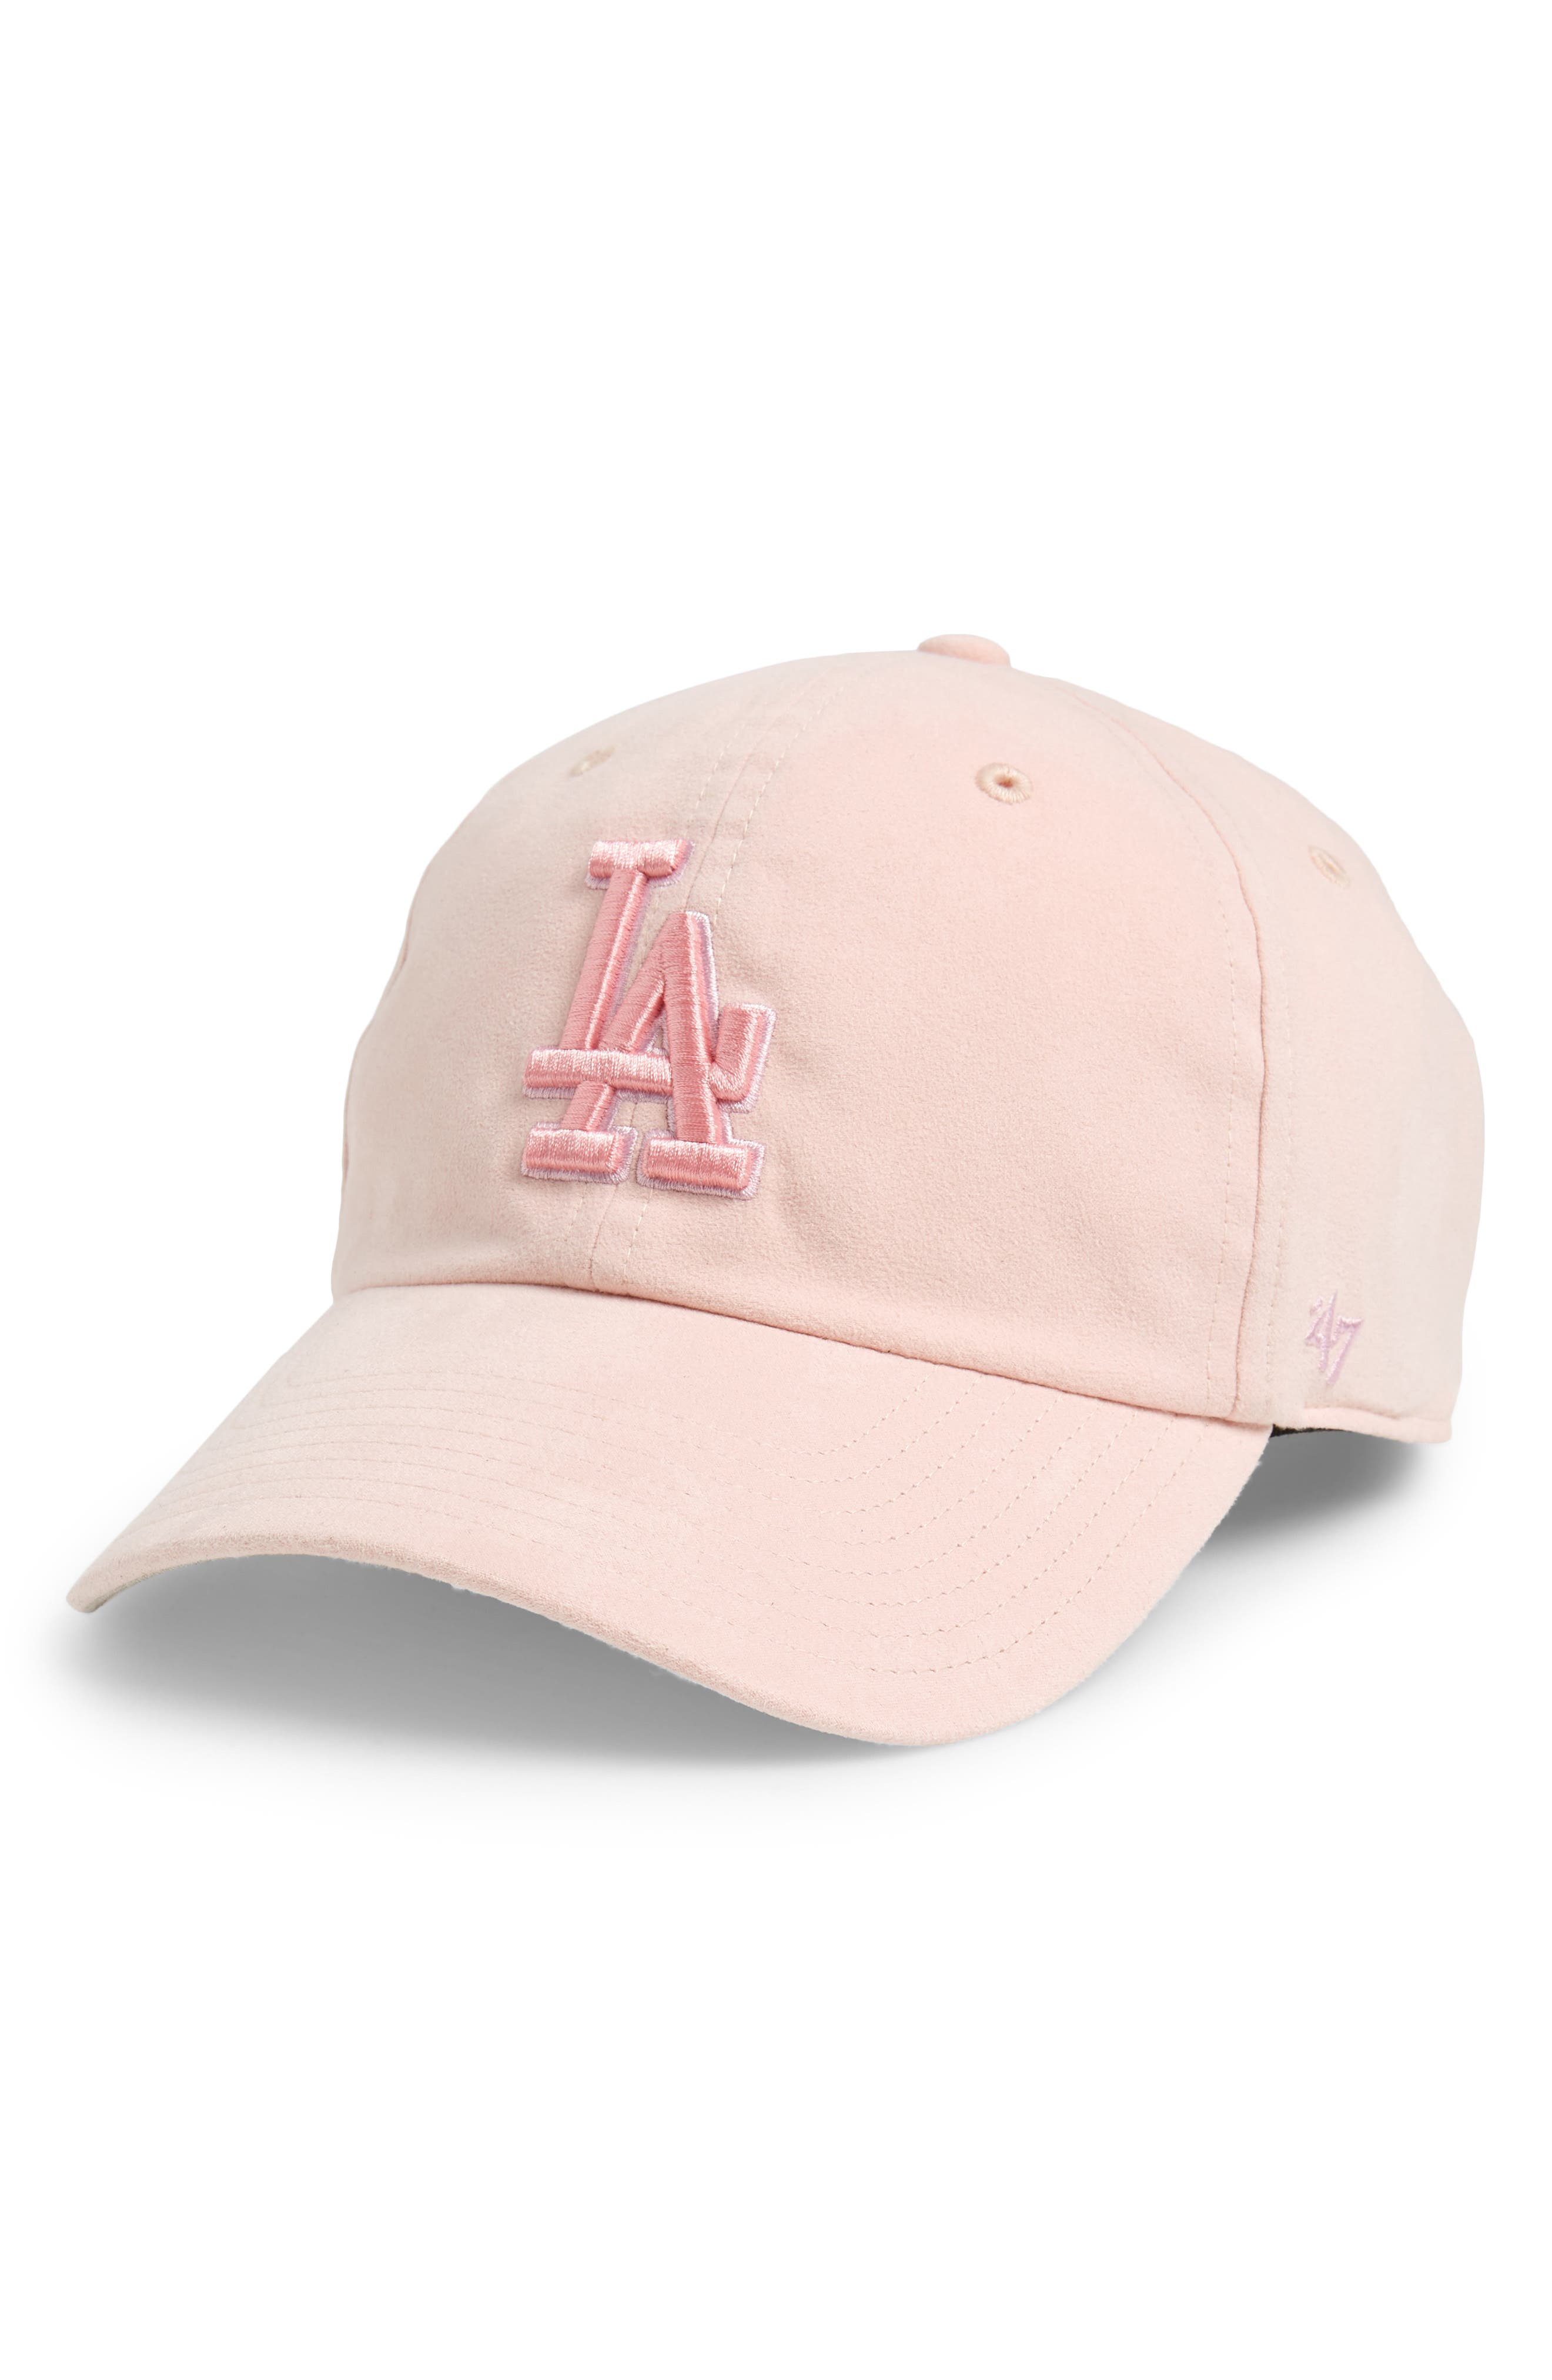 Ultrabasic Clean Up Los Angeles Dodgers Baseball Cap,                             Main thumbnail 1, color,                             Pink